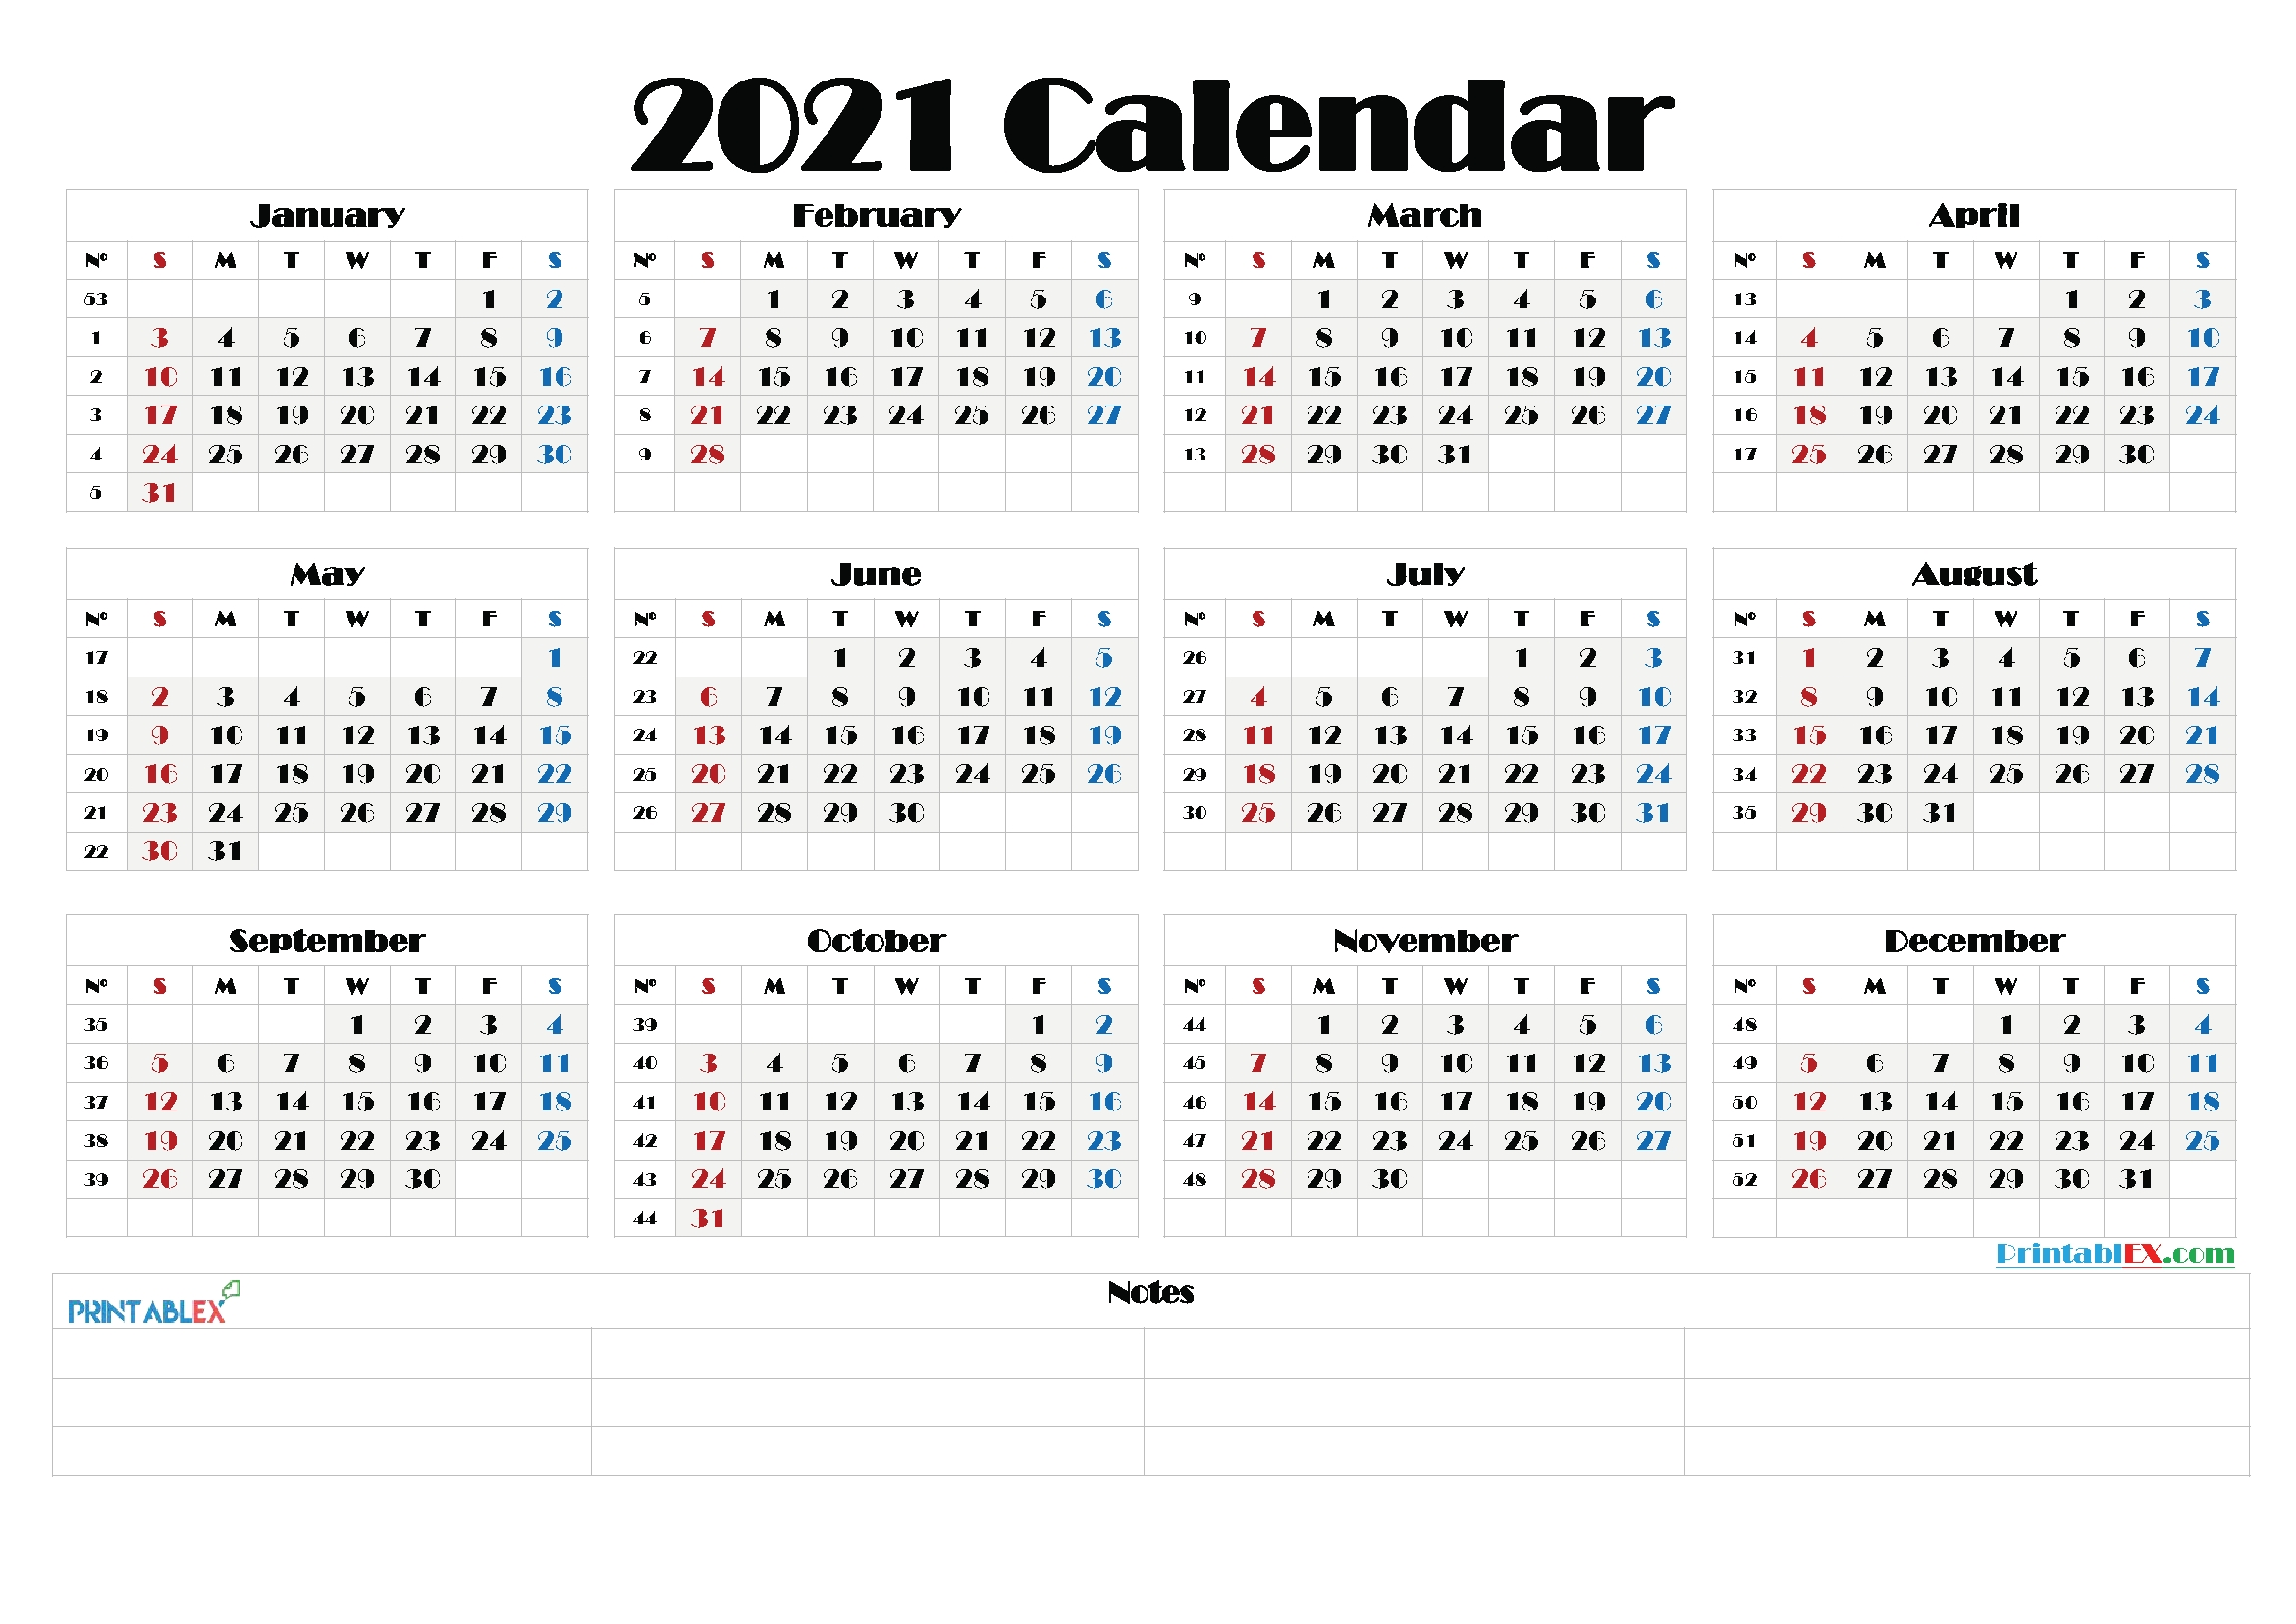 Catch Excel Calendar 2021 With Week Numbers